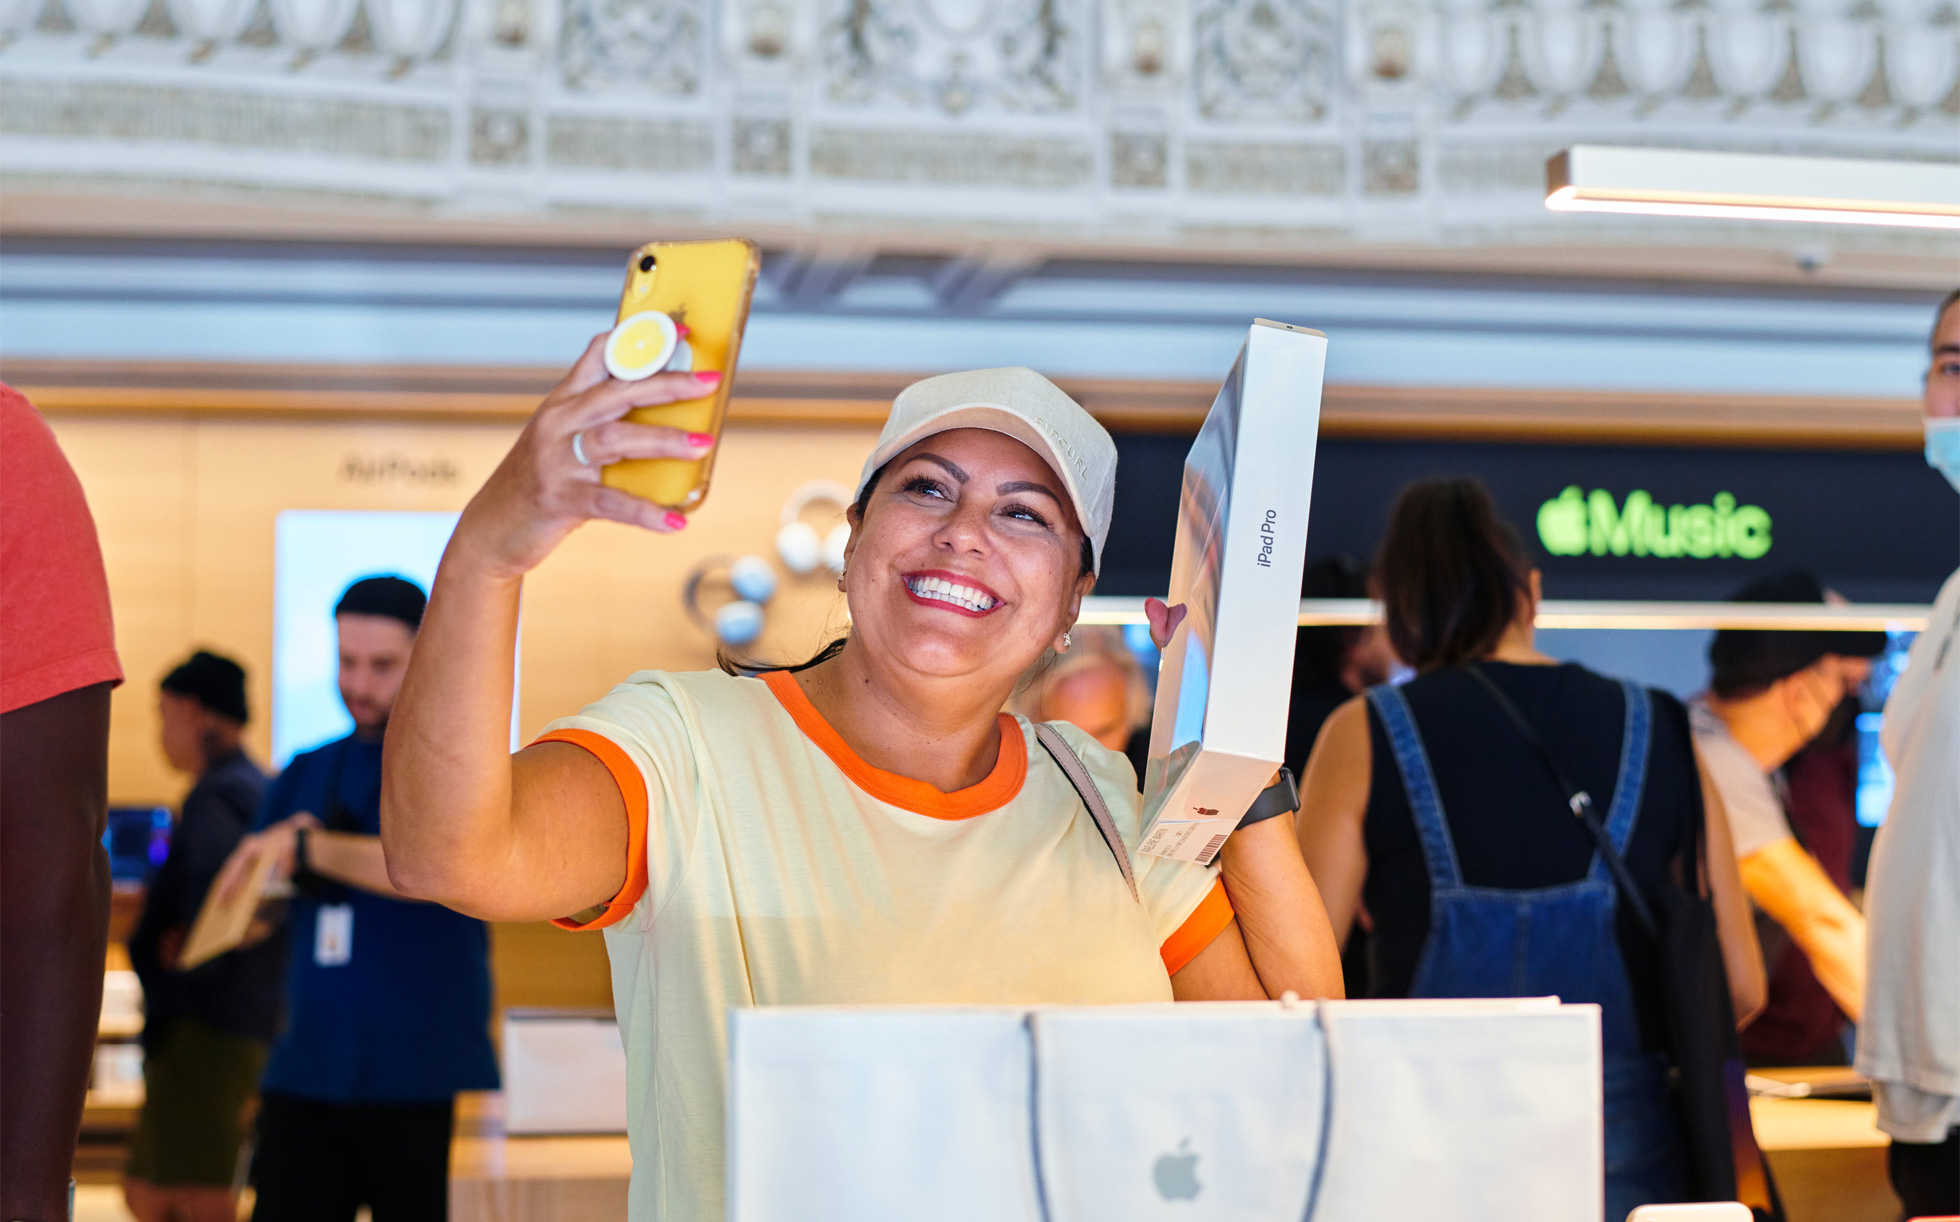 Apple Tower Theatre now open in downtown LA customer with new iPadPro 062421